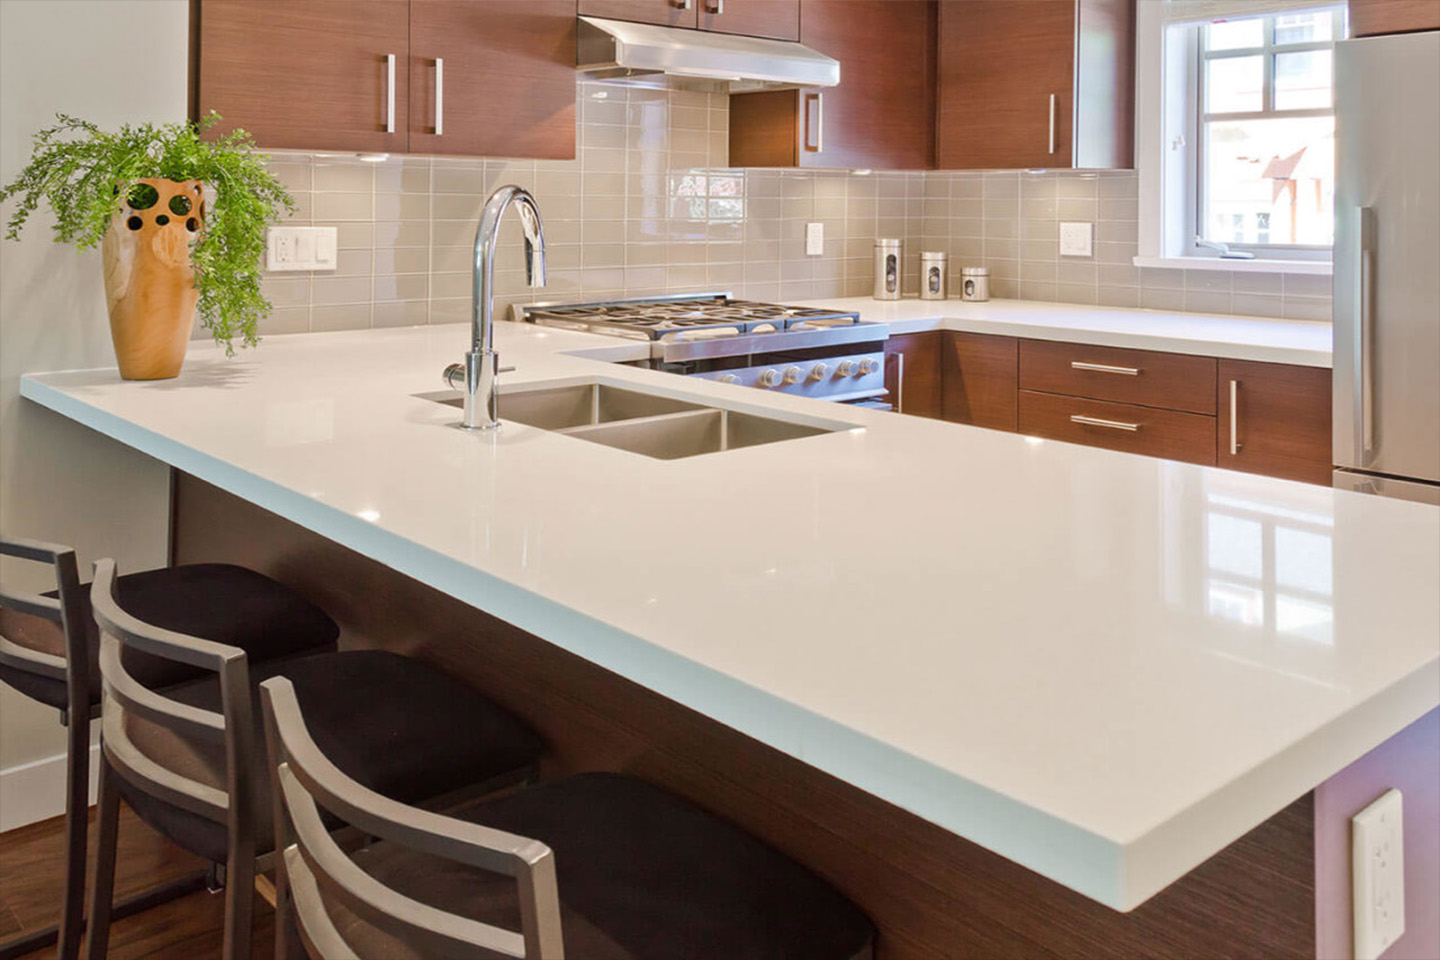 Atlanta Marble Countertops Granite And Quartz Countertops Atlanta Kitchen Cabinets